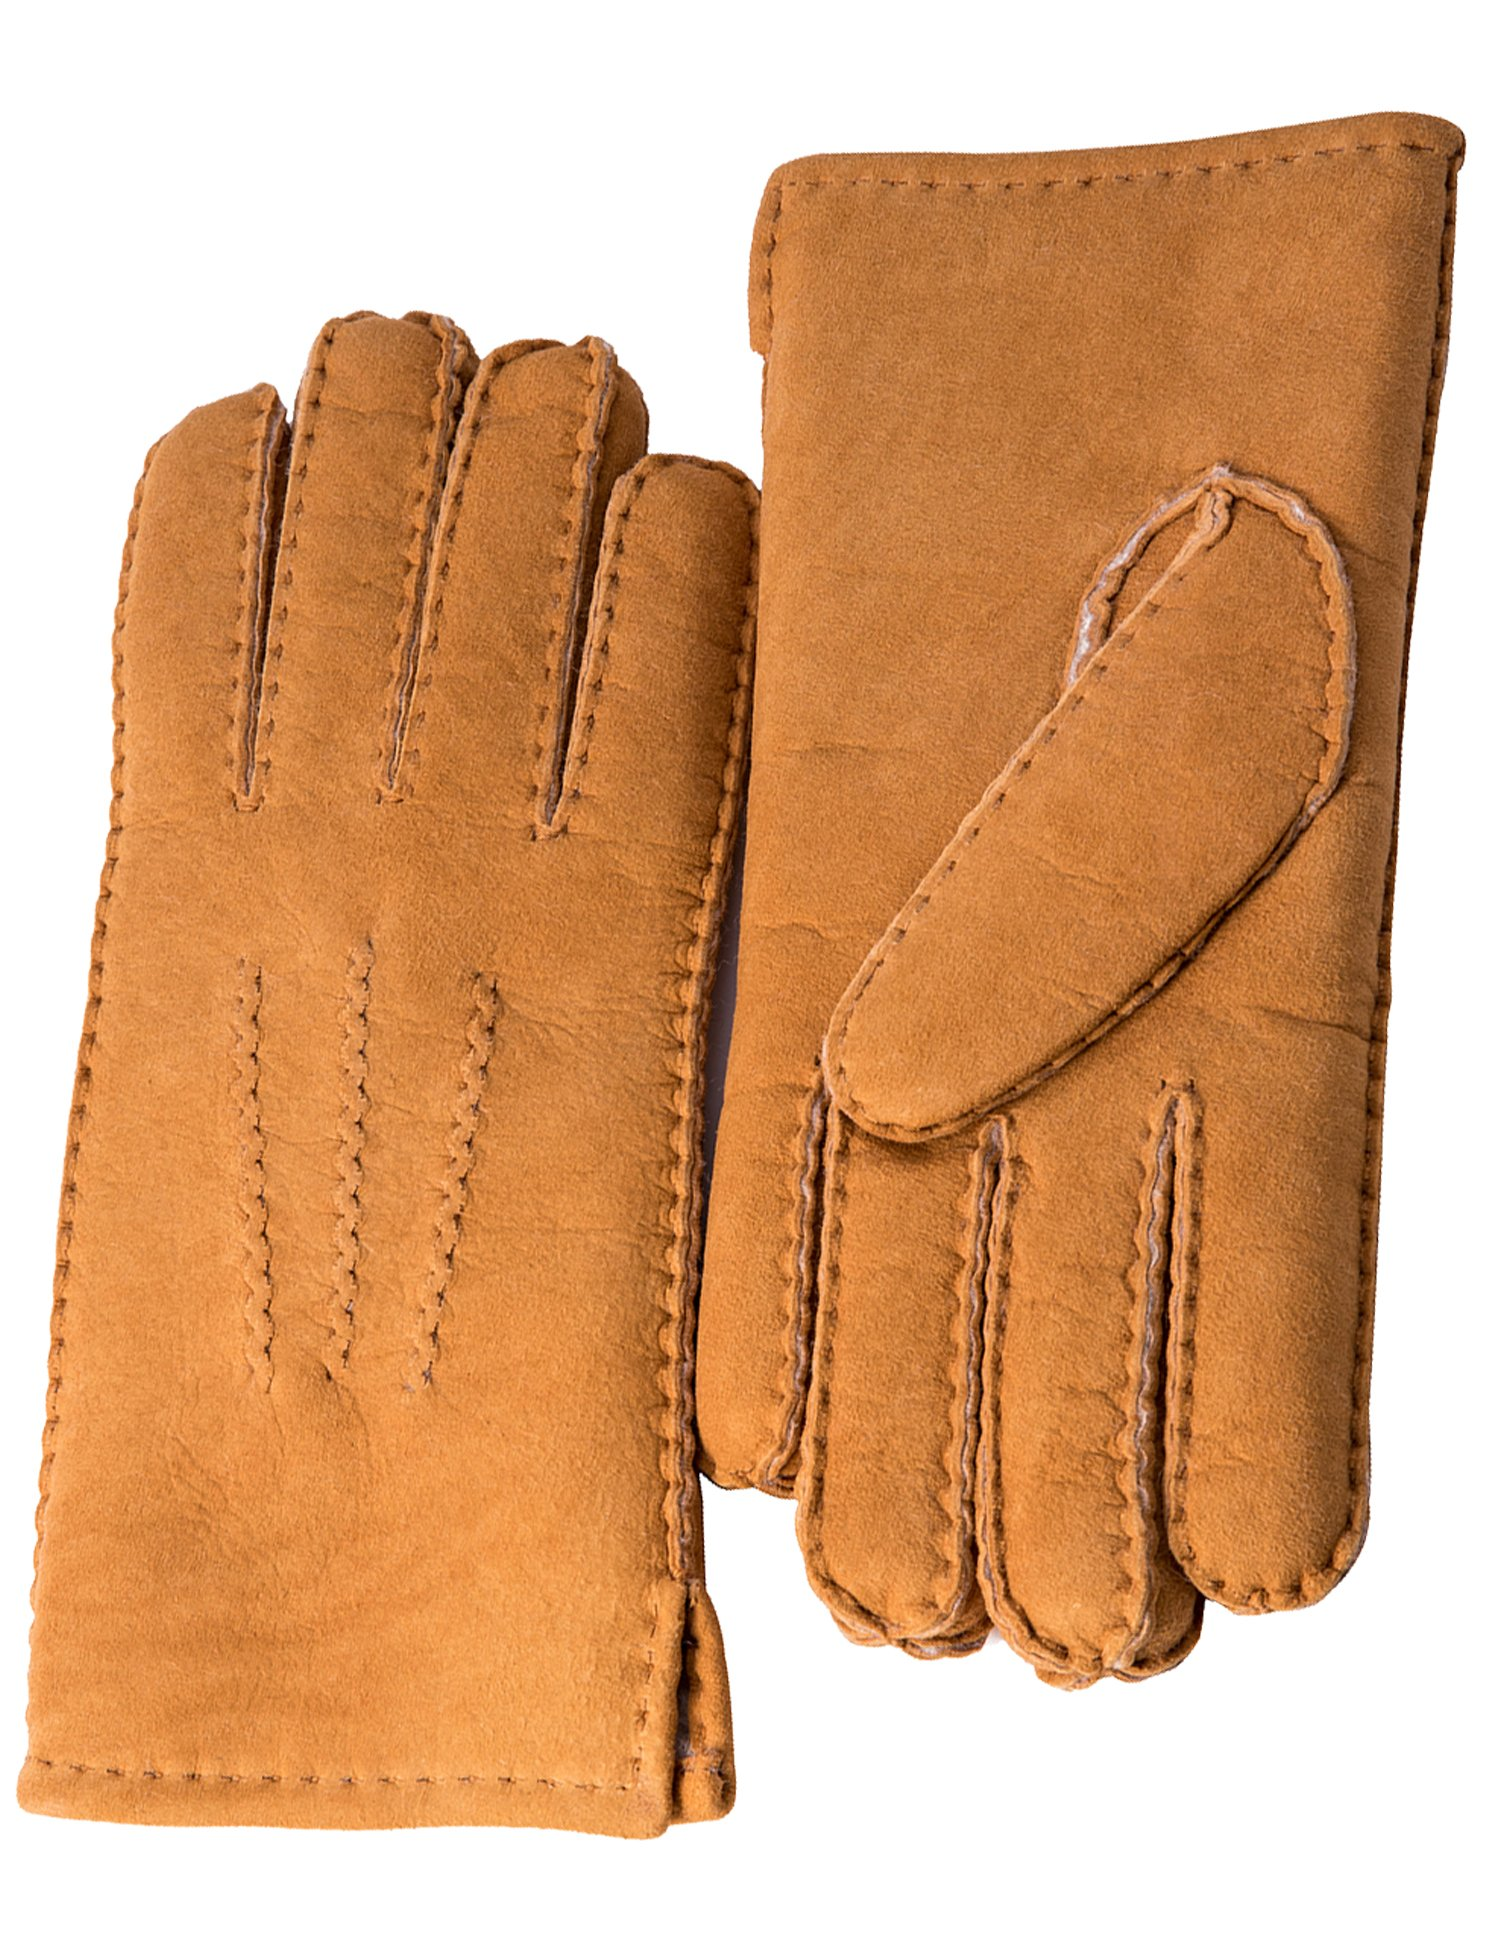 YISEVEN Women's Merino Rugged sheepskin Shearling Leather Gloves Three Points Soft Thick Furry Fur Lined Warm Heated Lining Cuffs for Winter Cold Weather Dress Driving Work Xmas Gifts, Camel Small